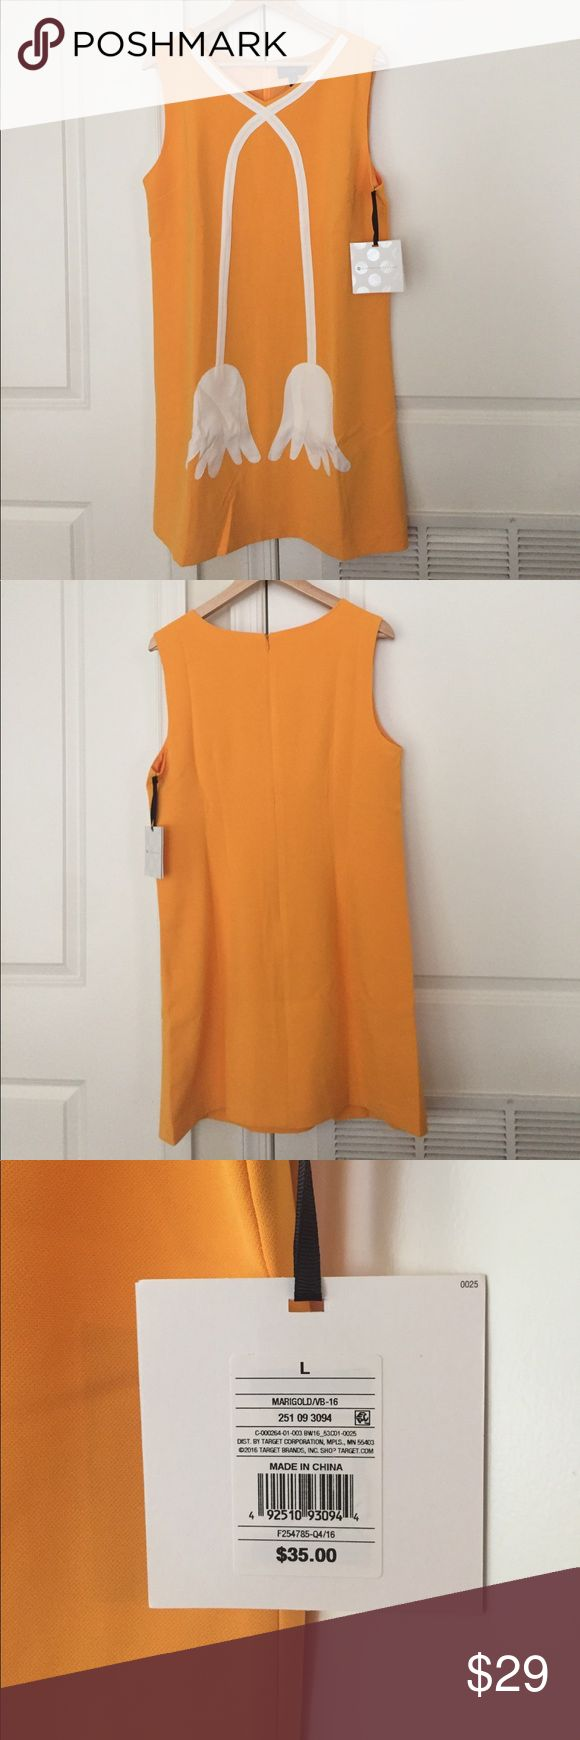 Victoria Beckham for Target NWT. Victoria Beckham for Target size Large. Very nice dress in yellow orange color with white flower design. Looks elegant and comfy in any occasion. You can wear it with a blazer and nice shoes for formal wear and as is with white sneakers for a casual wear! Victoria Beckham for Target Dresses